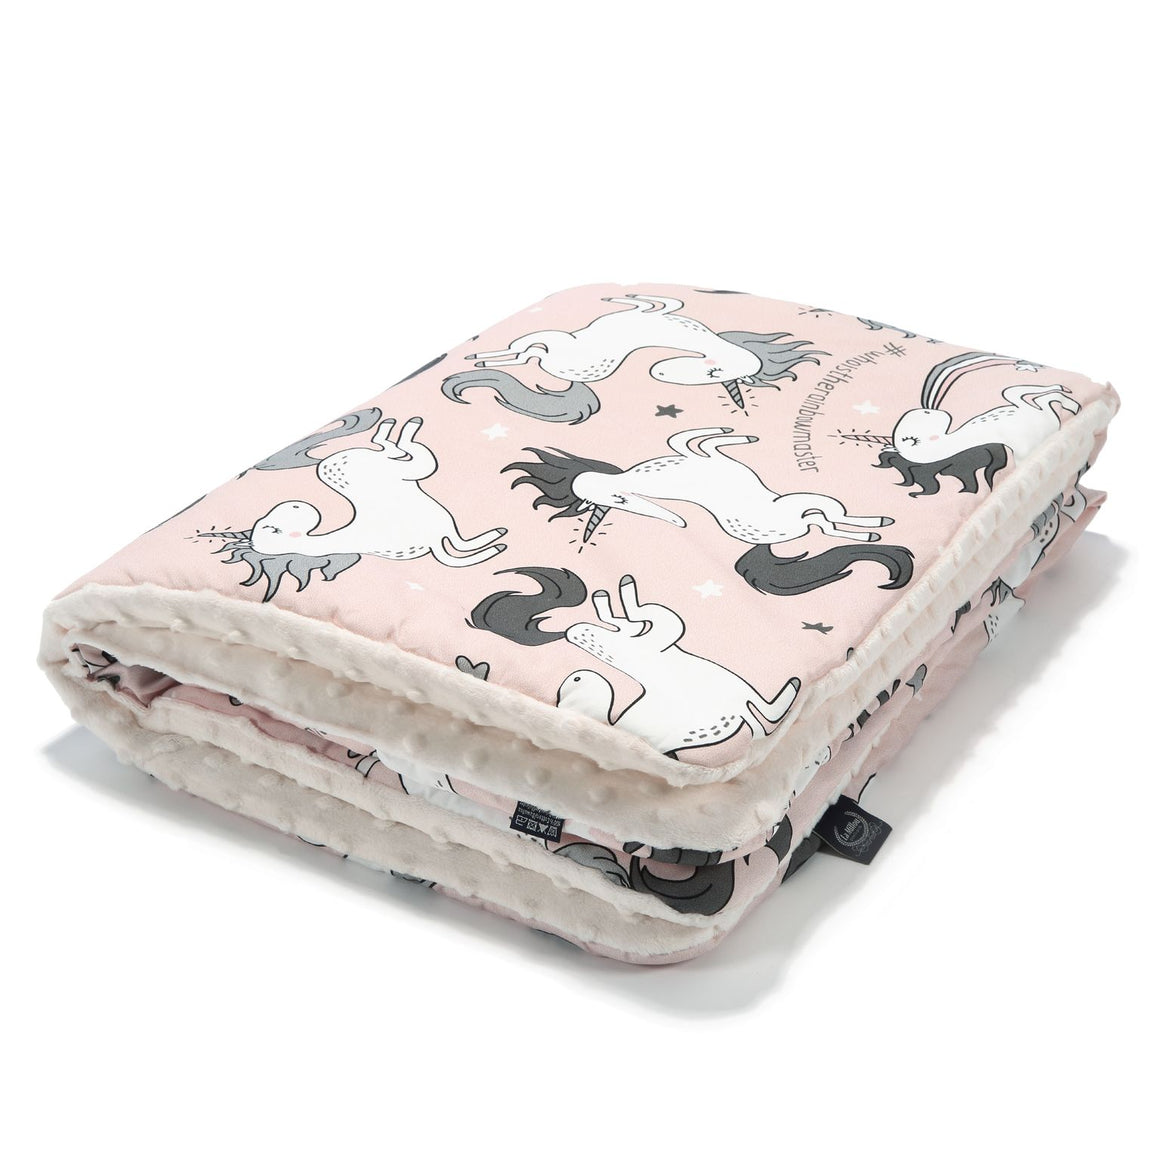 MEDIUM BLANKET peitto 80x100 cm - Unicorn Sugar Babe | Ecru